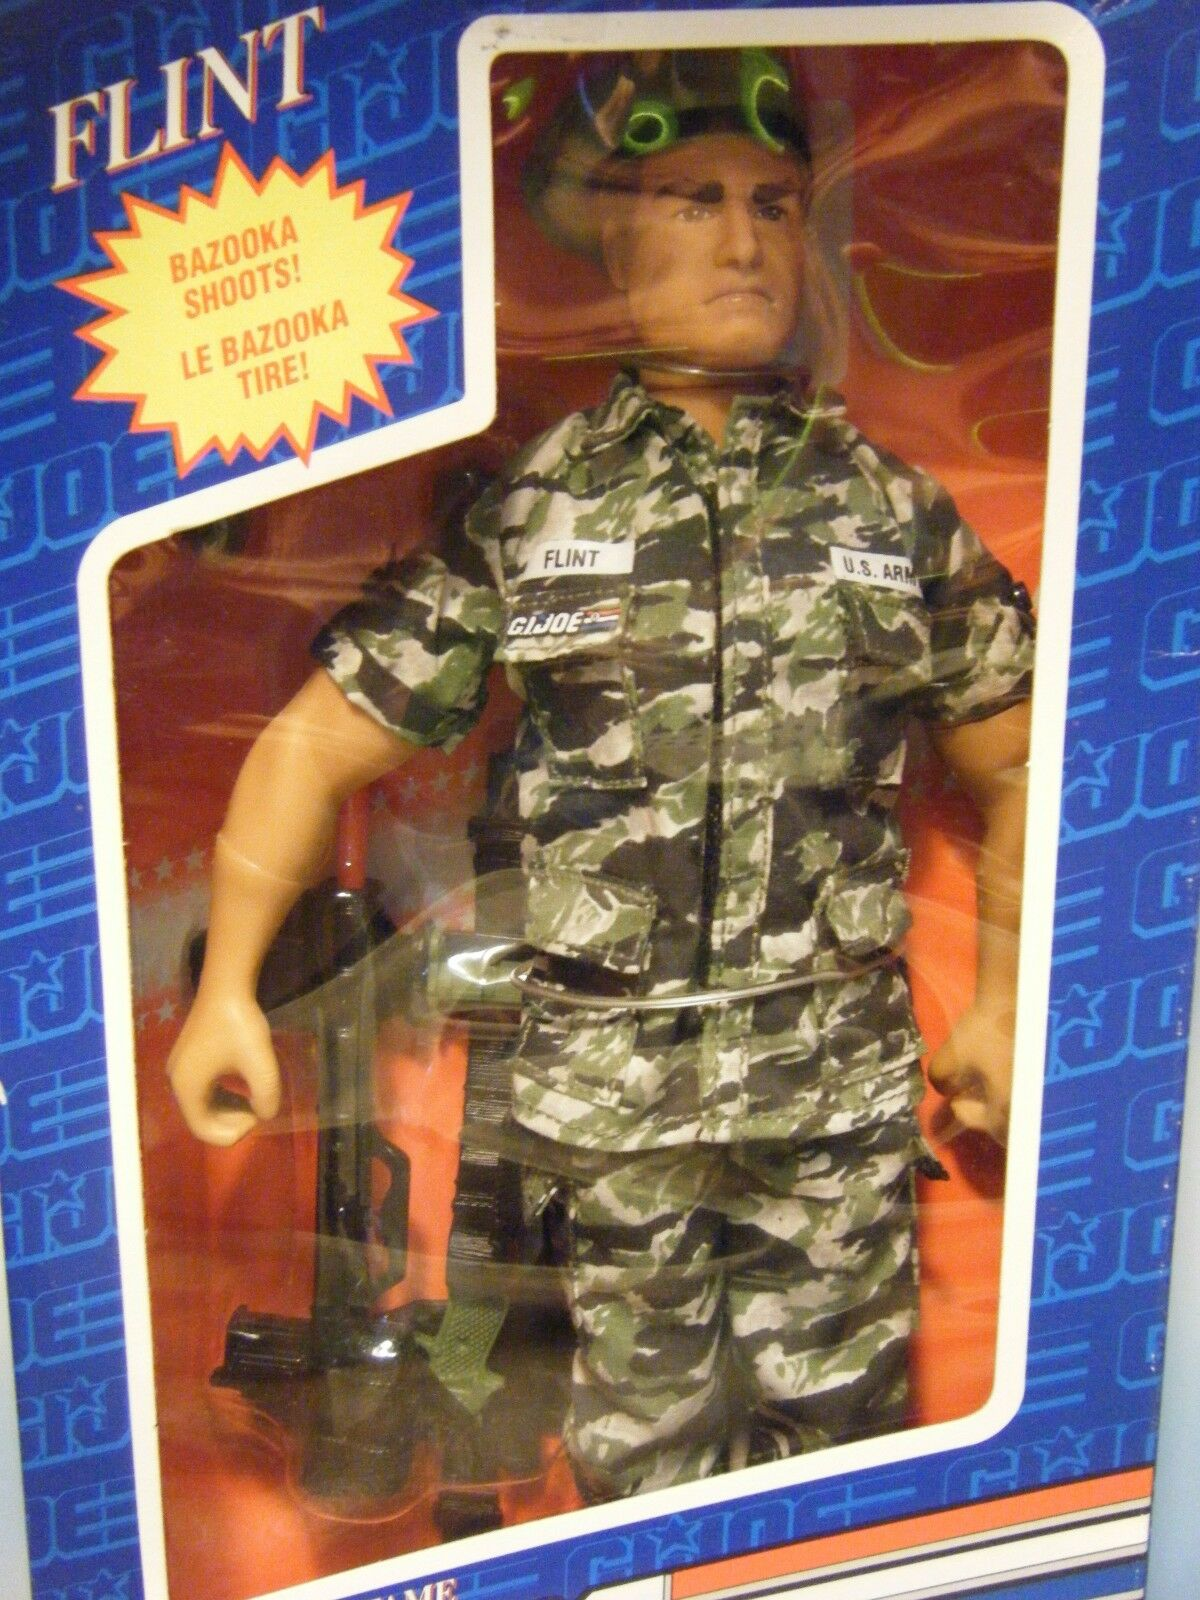 GI JOE HALL OF FAME FLINT 12  ACTION FIGURE LANGUAGE VARIANT BOX